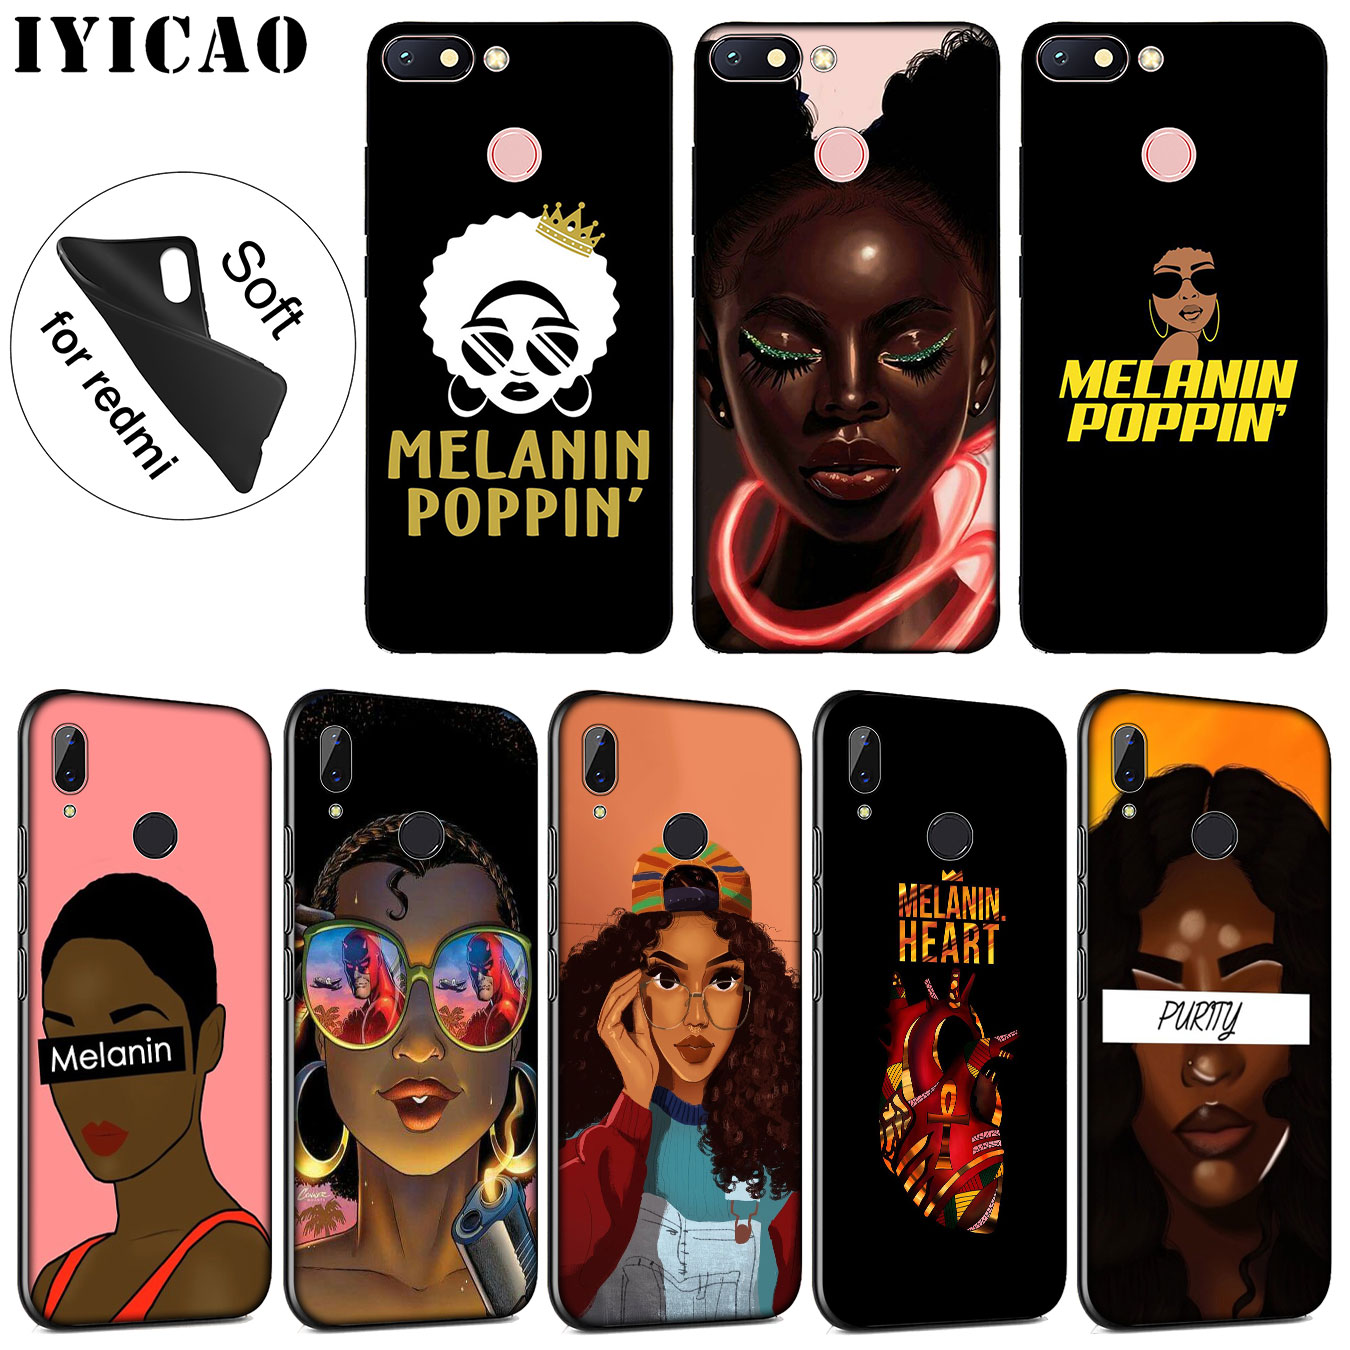 Clever Iyicao 2bunz Melanin Poppin Soft Silicone Phone Case For Xiaomi Redmi 6a 5a Note 7 4 4x 5 Plus 6 Pro Black Tpu Cover Skillful Manufacture Phone Bags & Cases